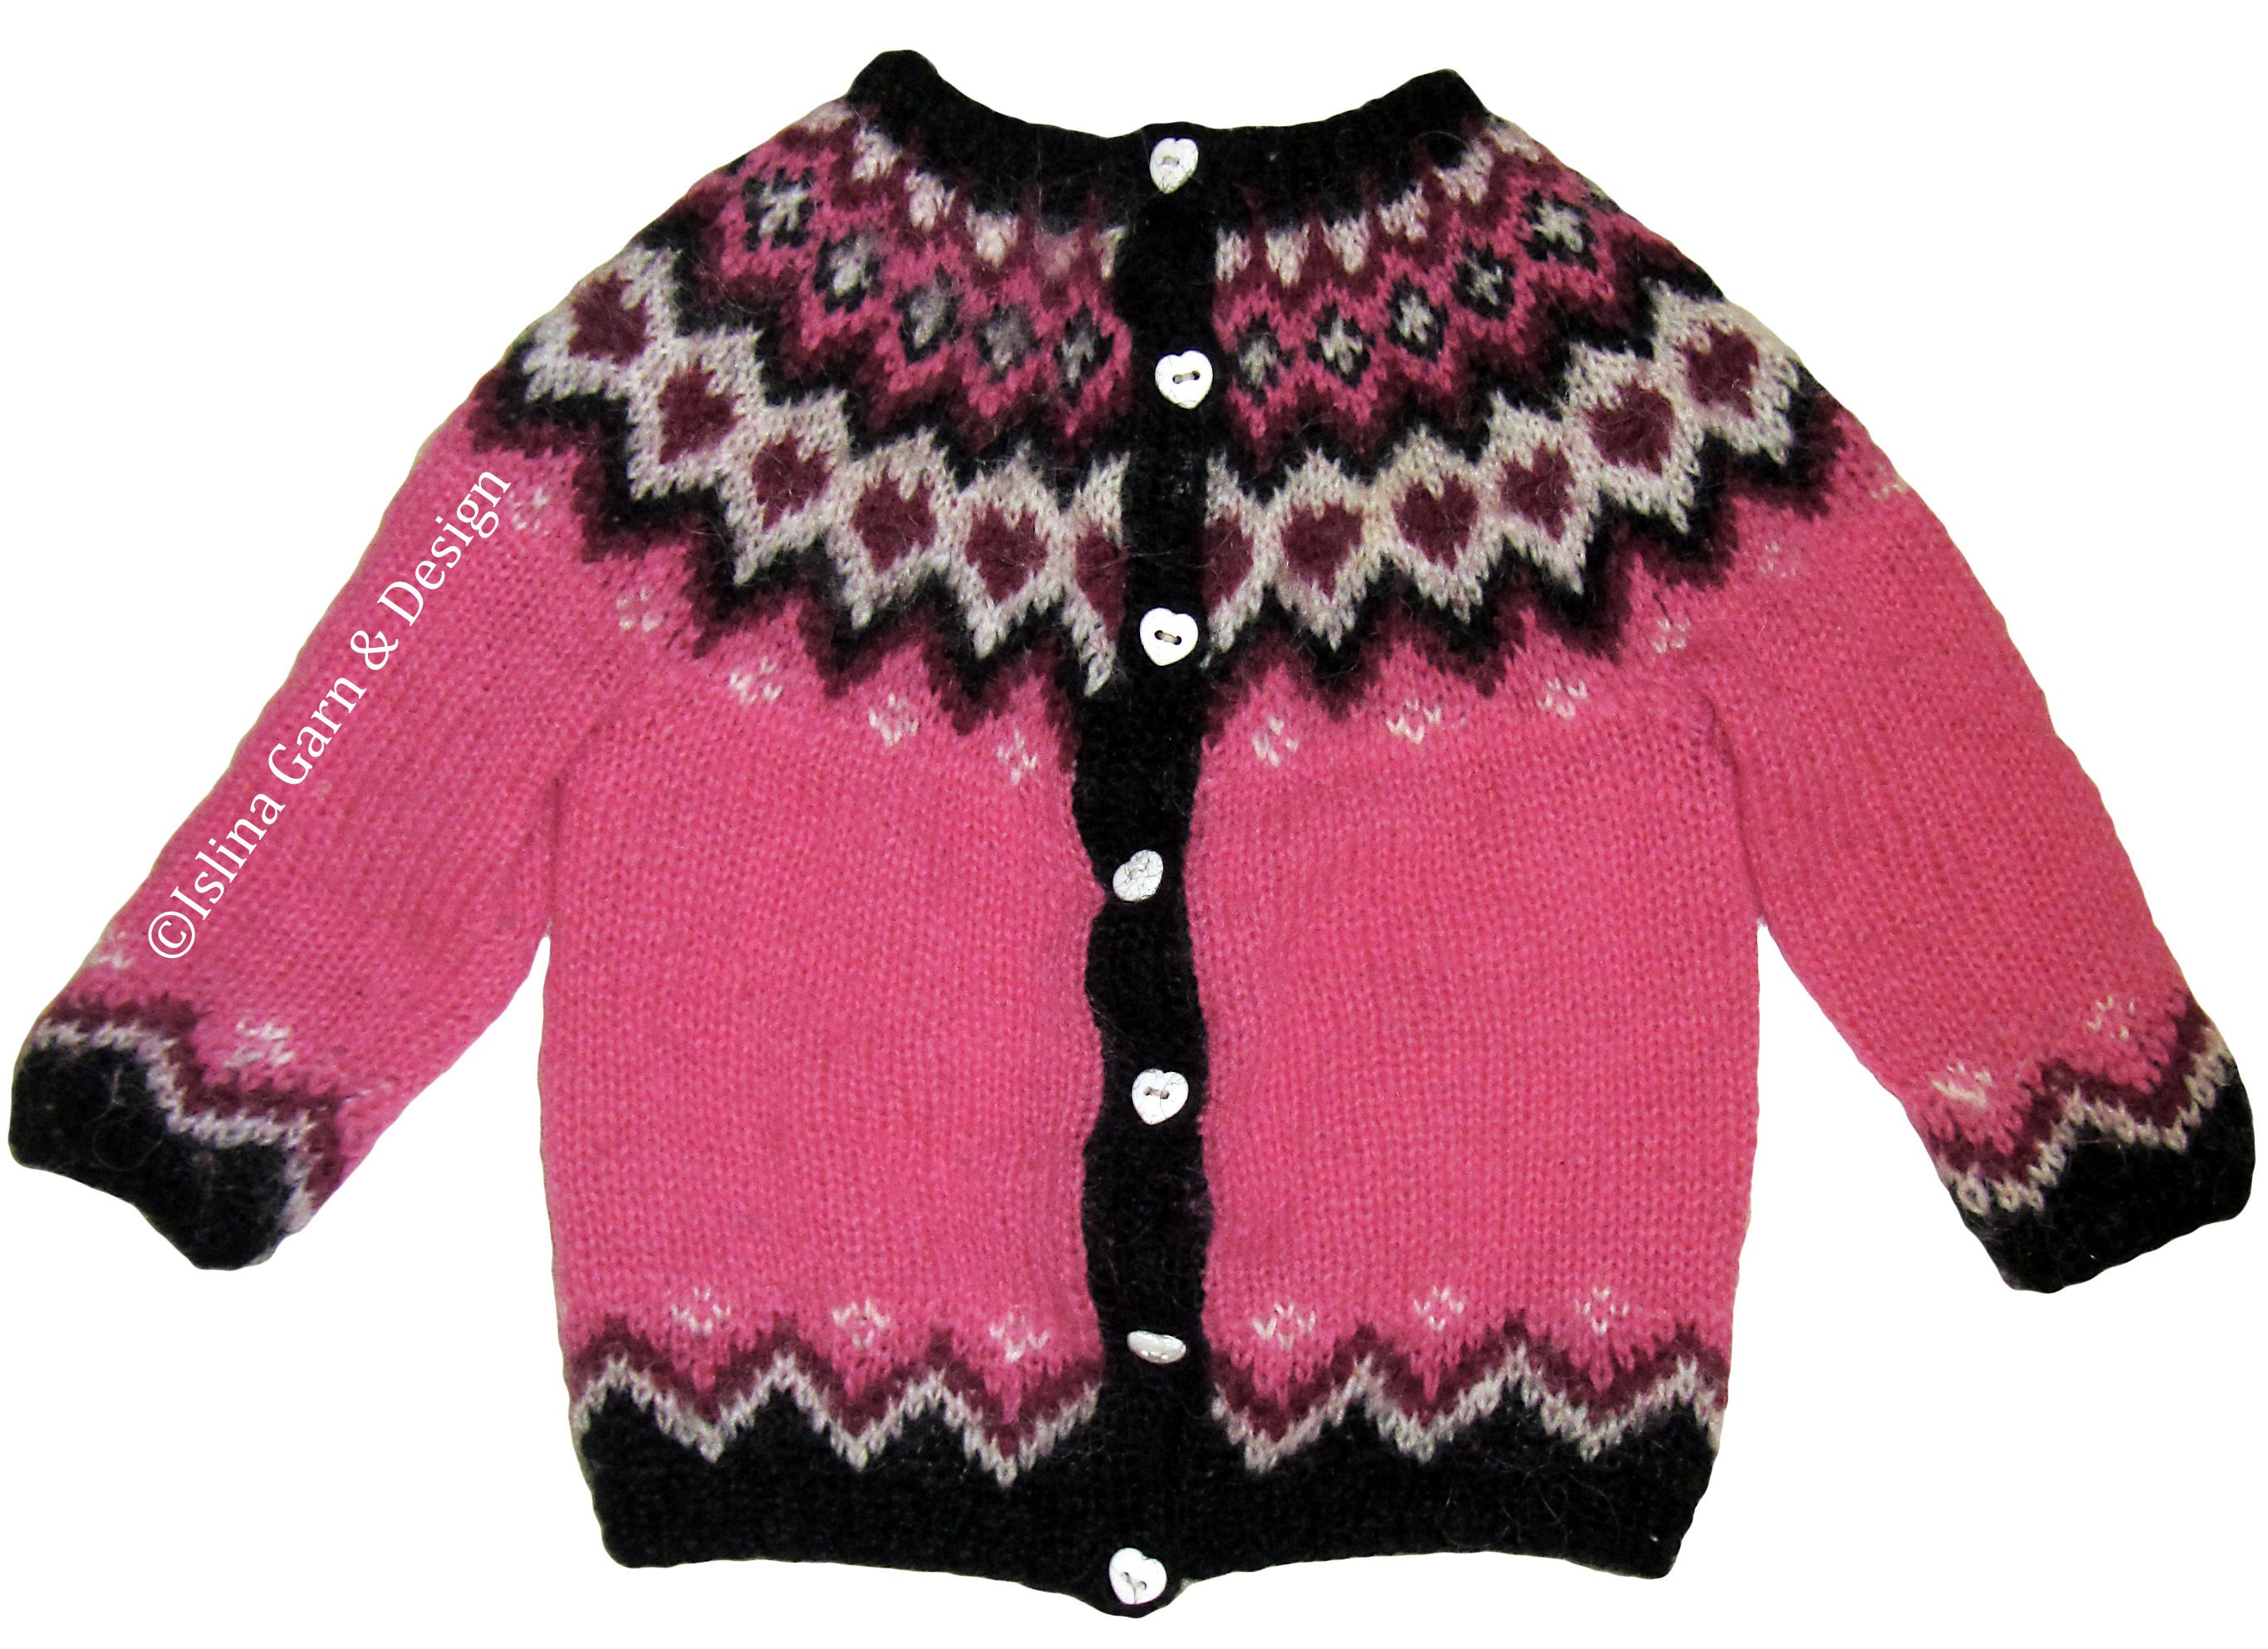 icelandic sweater patterns free - Google Search | Clothes & Style ...